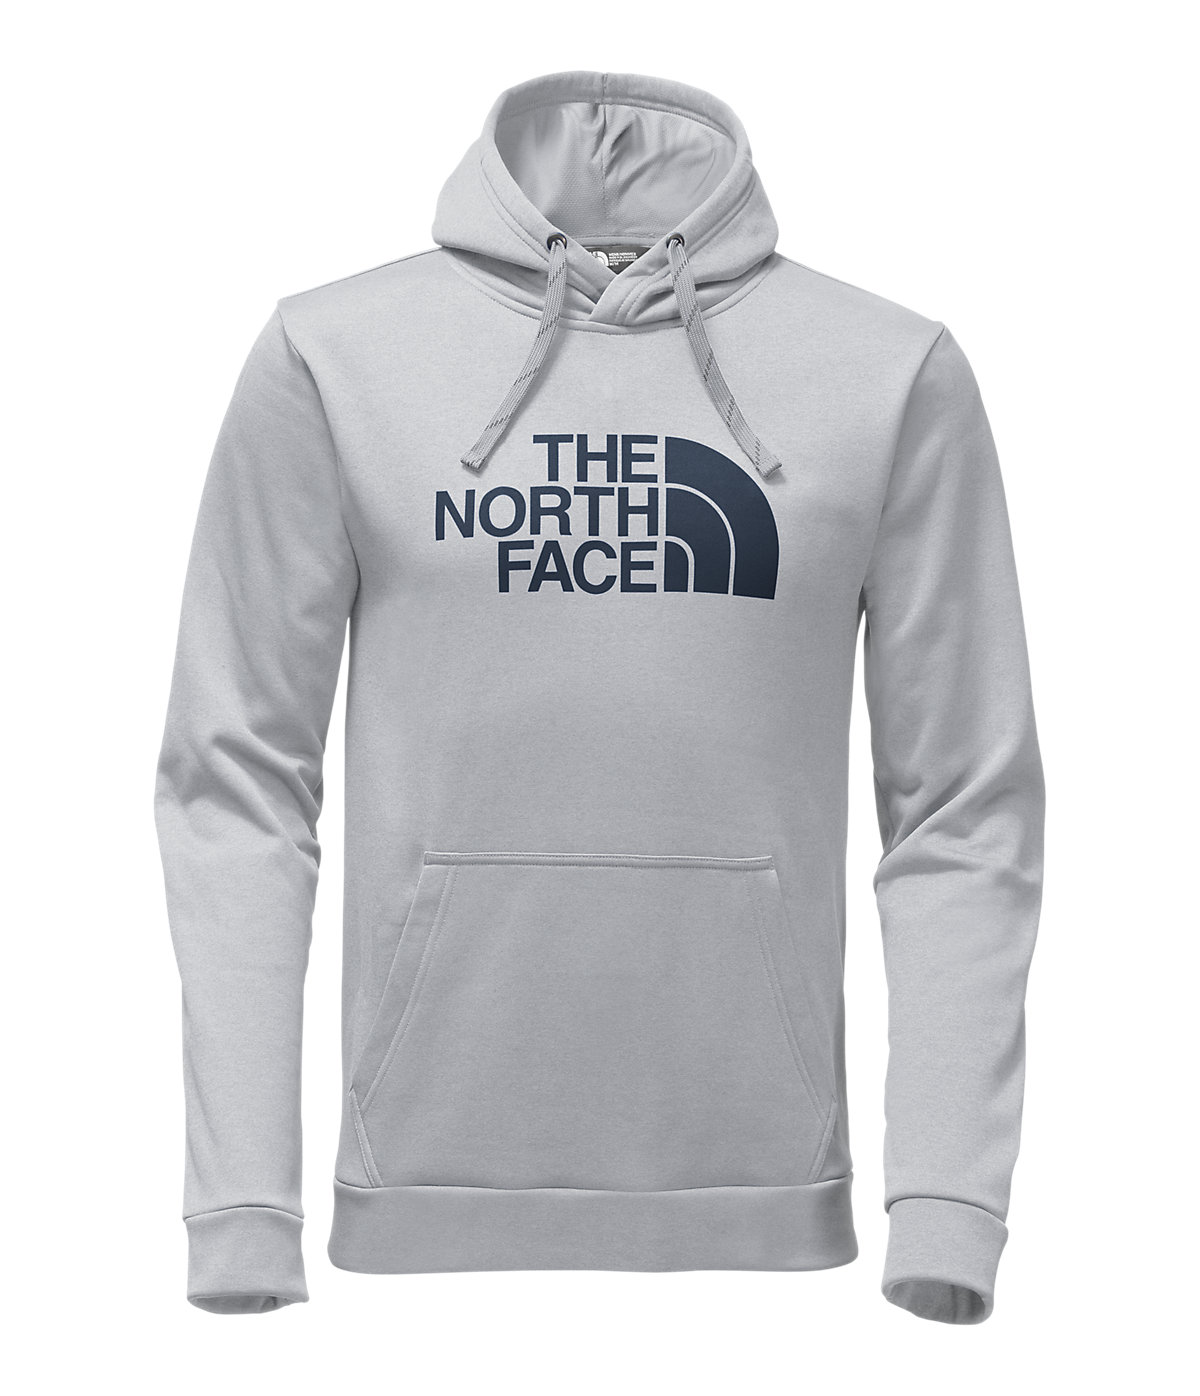 The North Face Mens Surgent Pullover Half Dome Hoodie